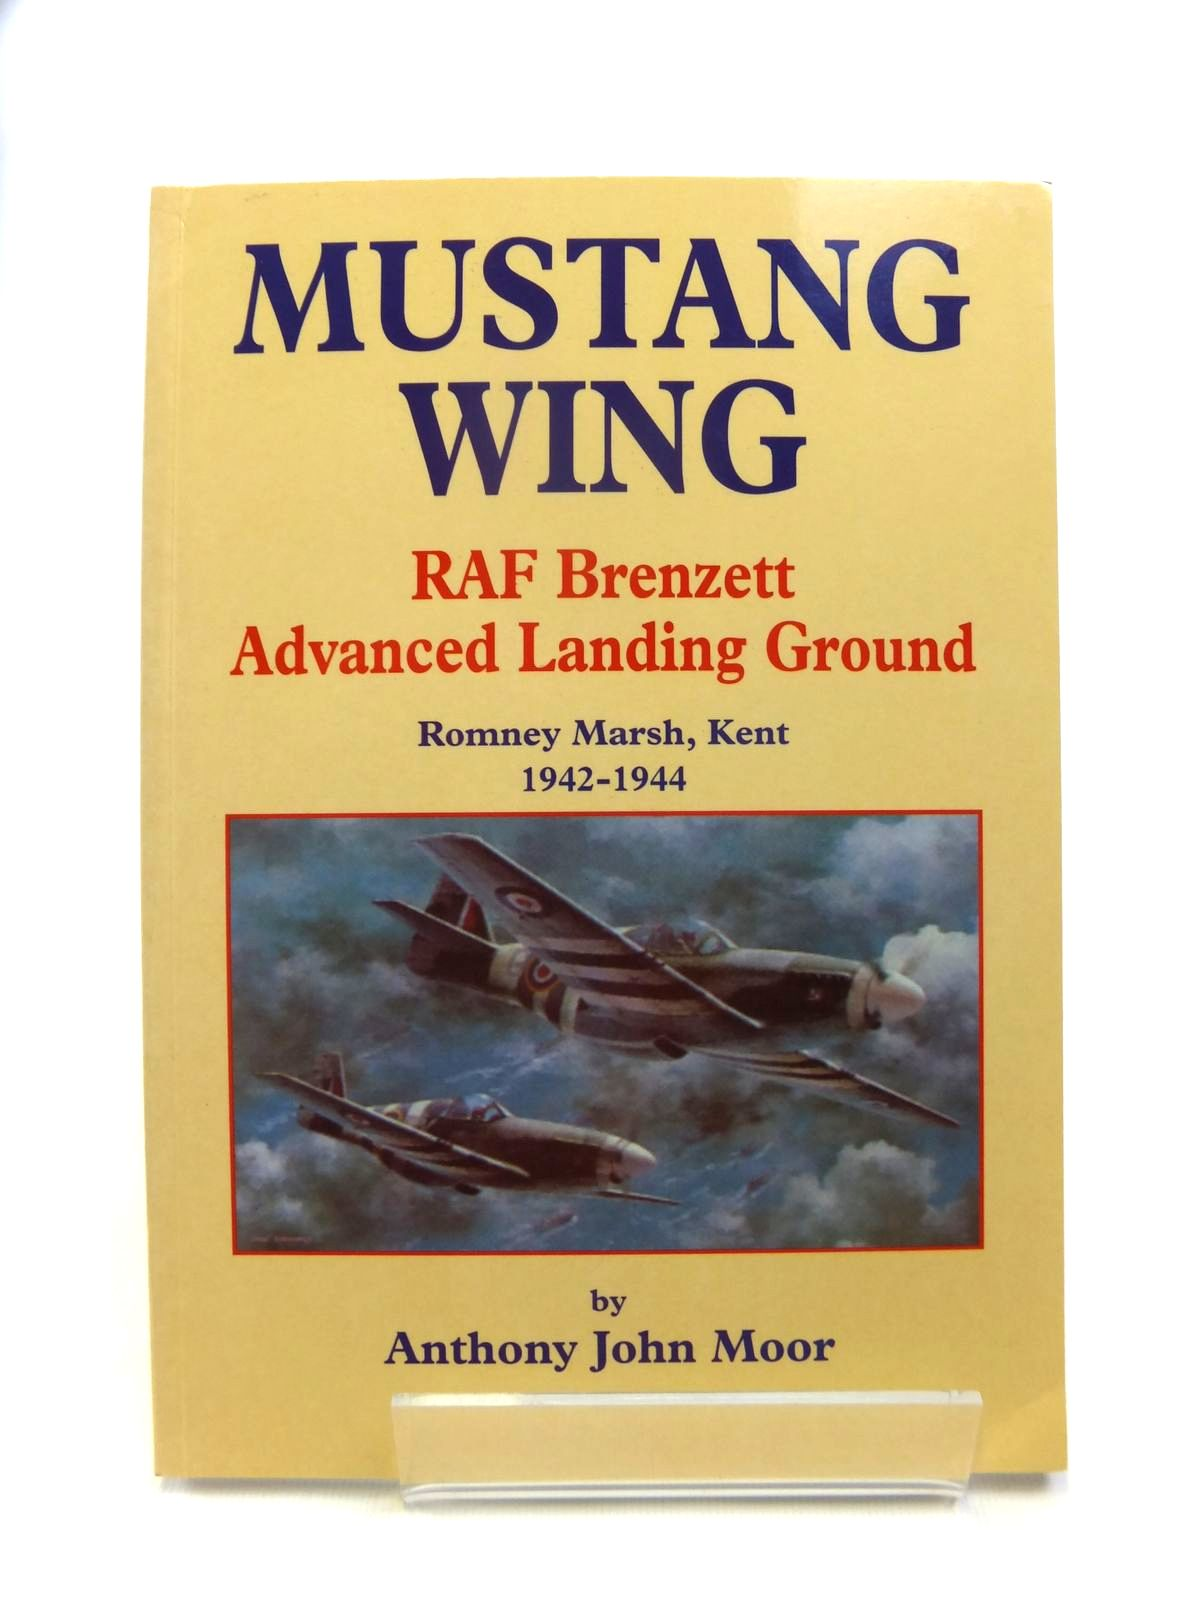 Photo of MUSTANG WING RAF BRENZETT ADVANCED LANDING GROUND ROMNEY MARSH KENT 1942-1944 written by Moor, Anthony John published by Hpc Publishing (STOCK CODE: 1812119)  for sale by Stella & Rose's Books